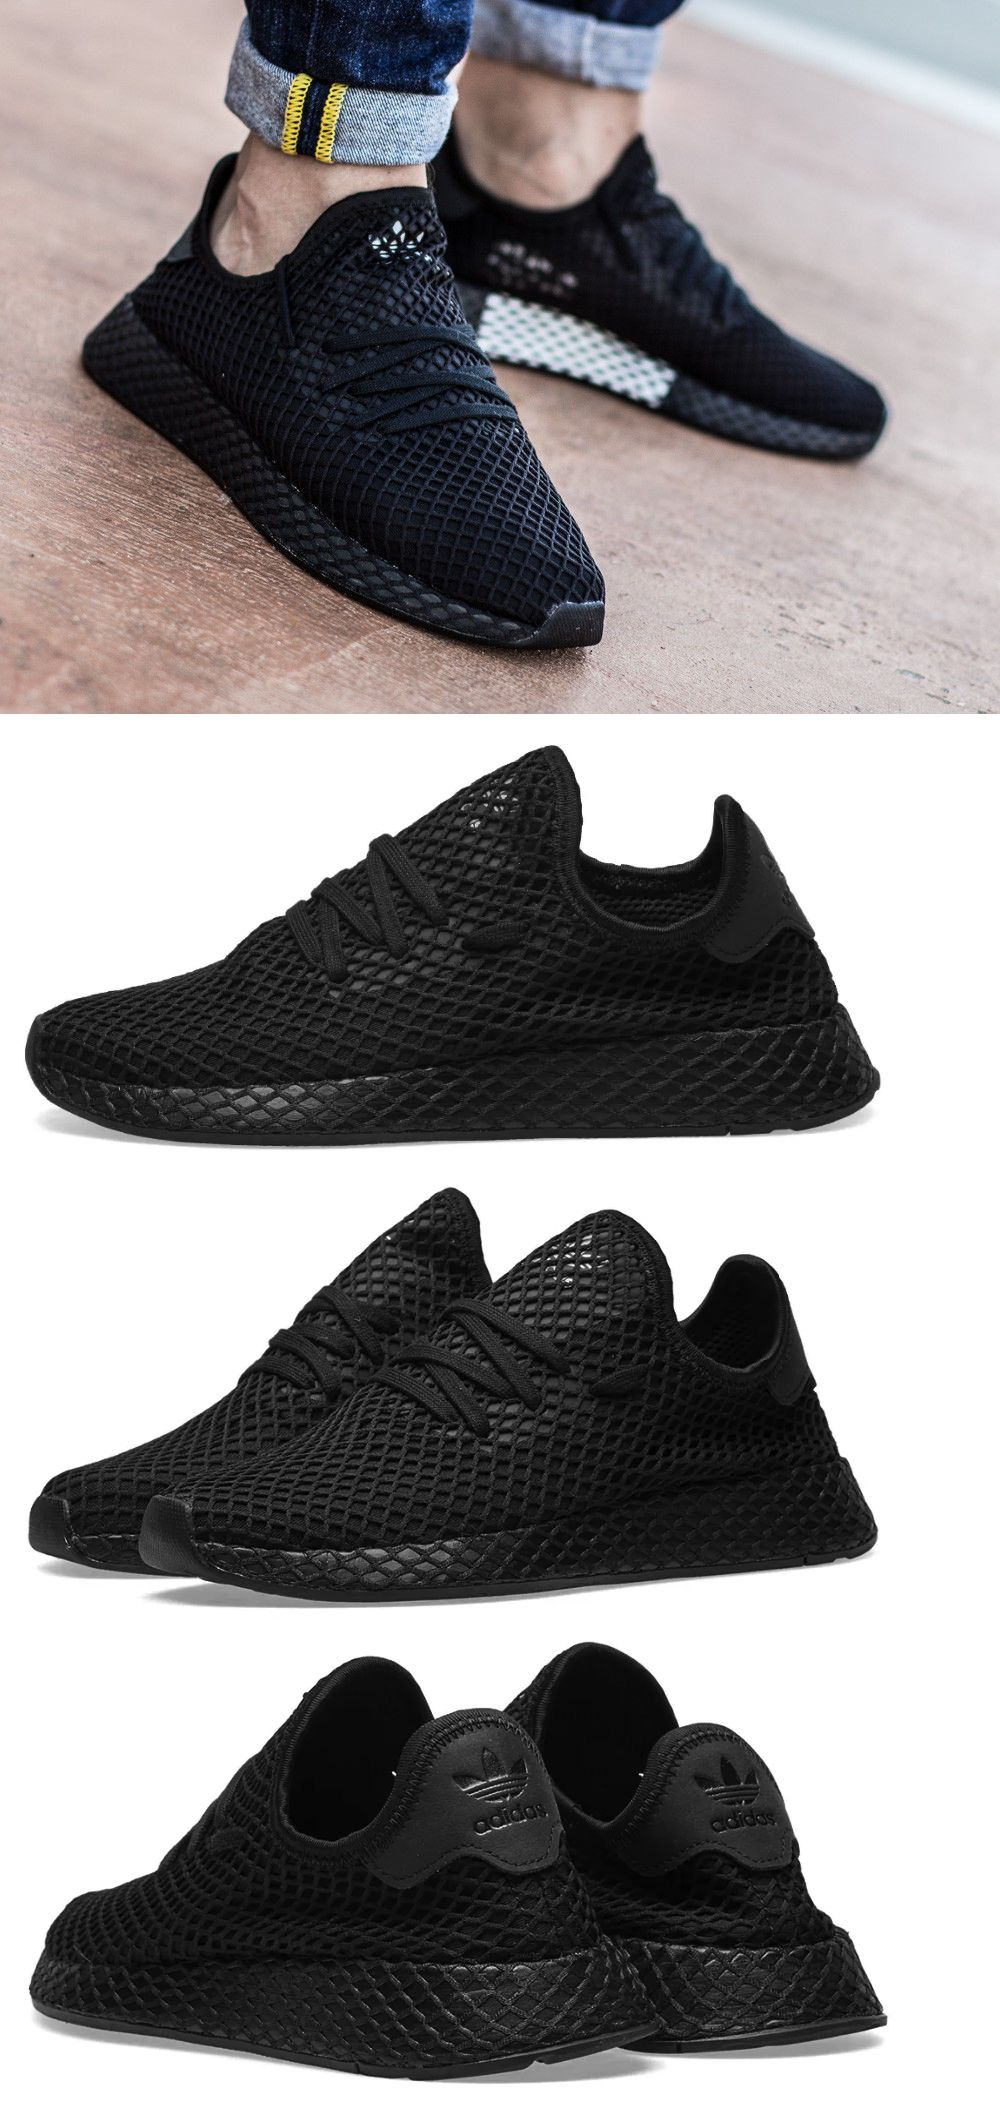 926965a45edca Athletic Shoes 15709  New Adidas Originals Deerupt Runner Sneaker Mens  Triple Black White All Sz -  BUY IT NOW ONLY   69.99 on  eBay  athletic   shoes ...